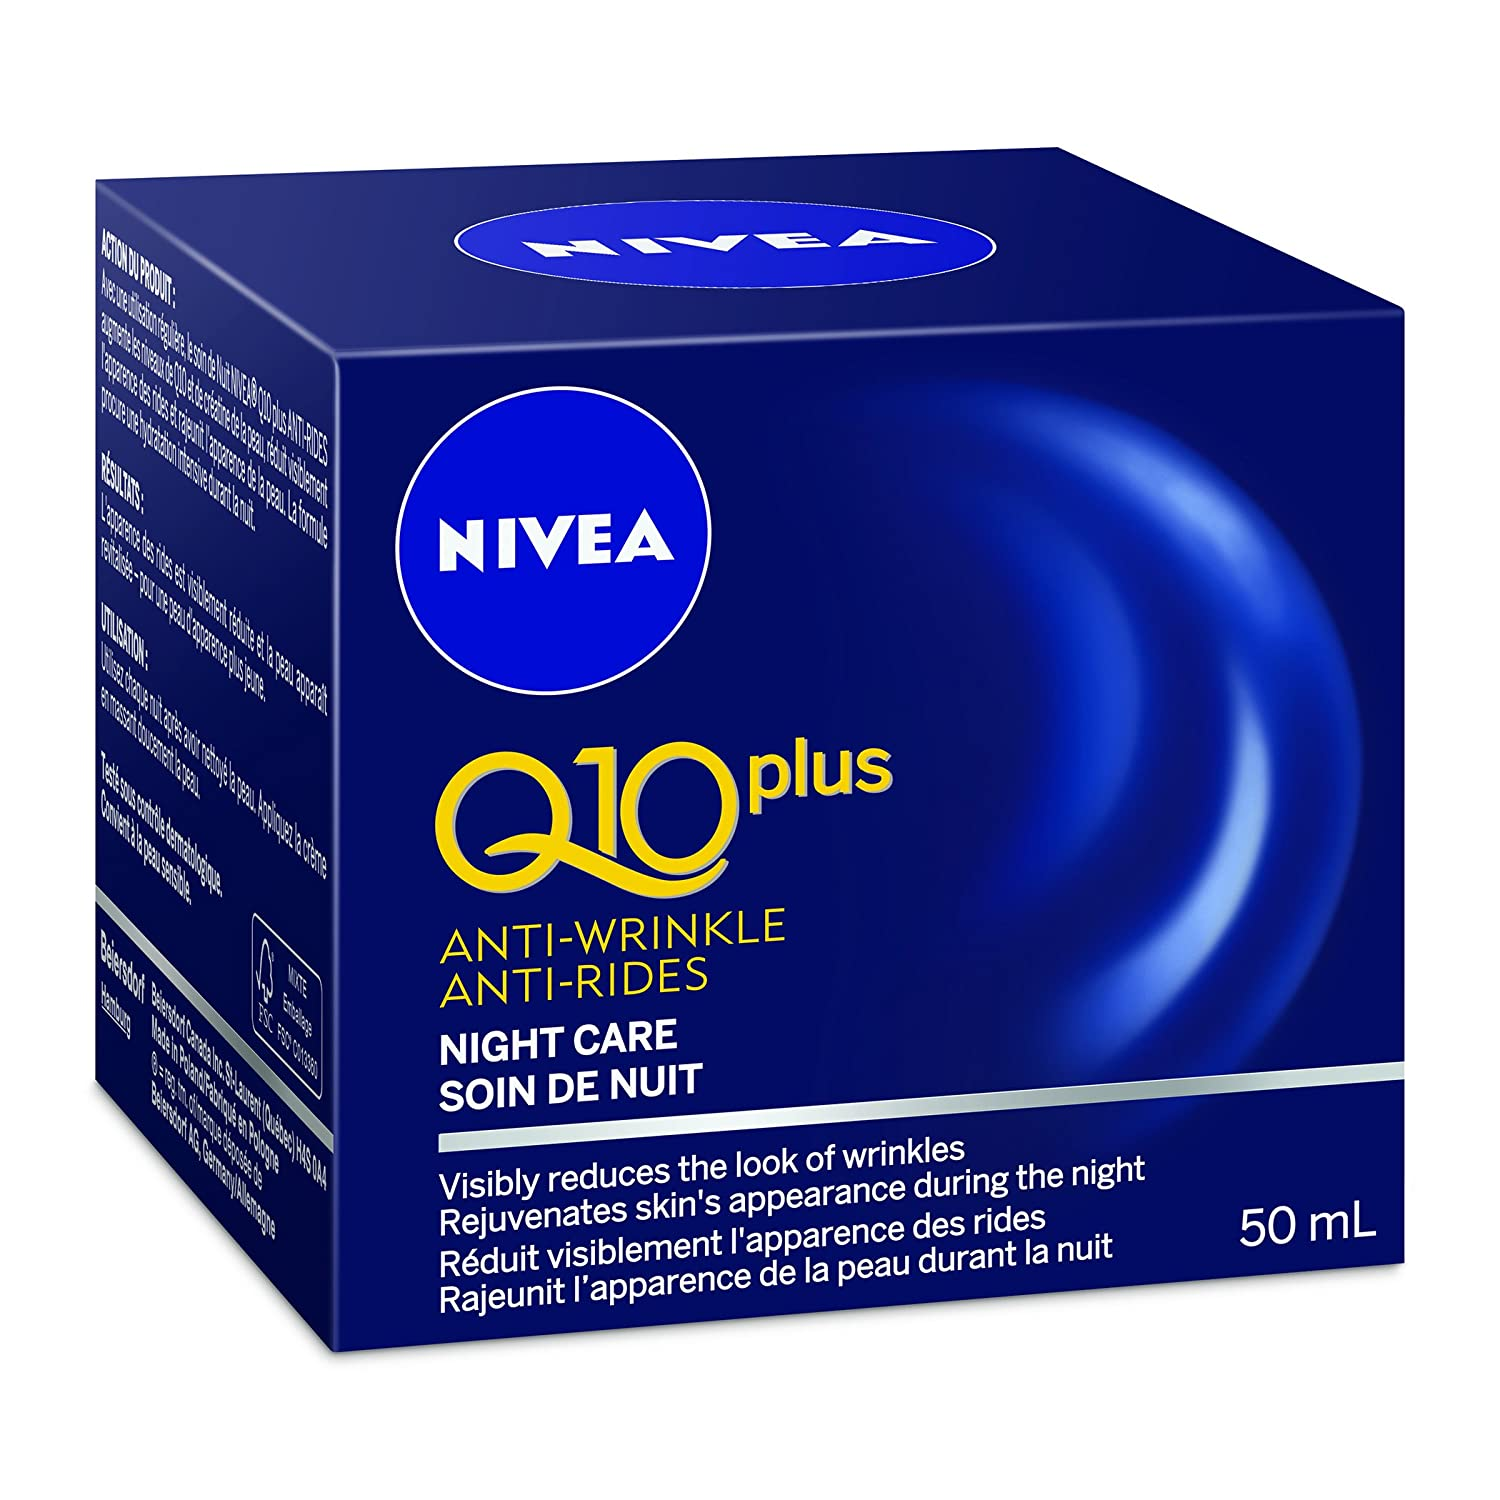 NIVEA Q10 plus Anti-Wrinkle Night Care 50ml Chom 056594101692